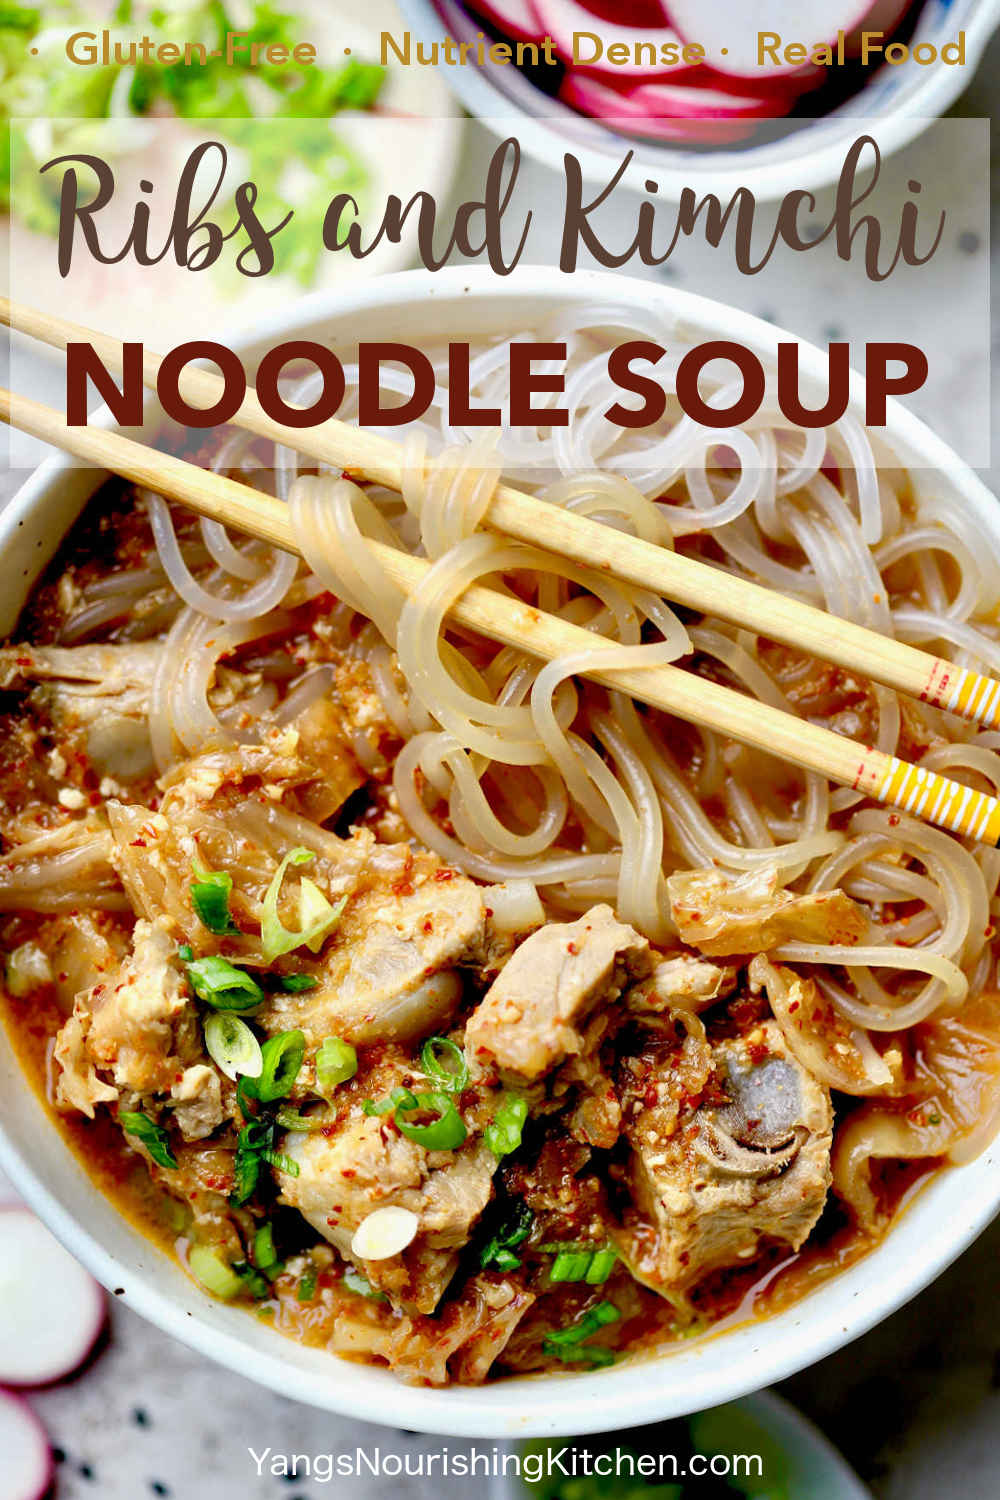 Gluten-Free Ribs and Kimchi Noodle Soup